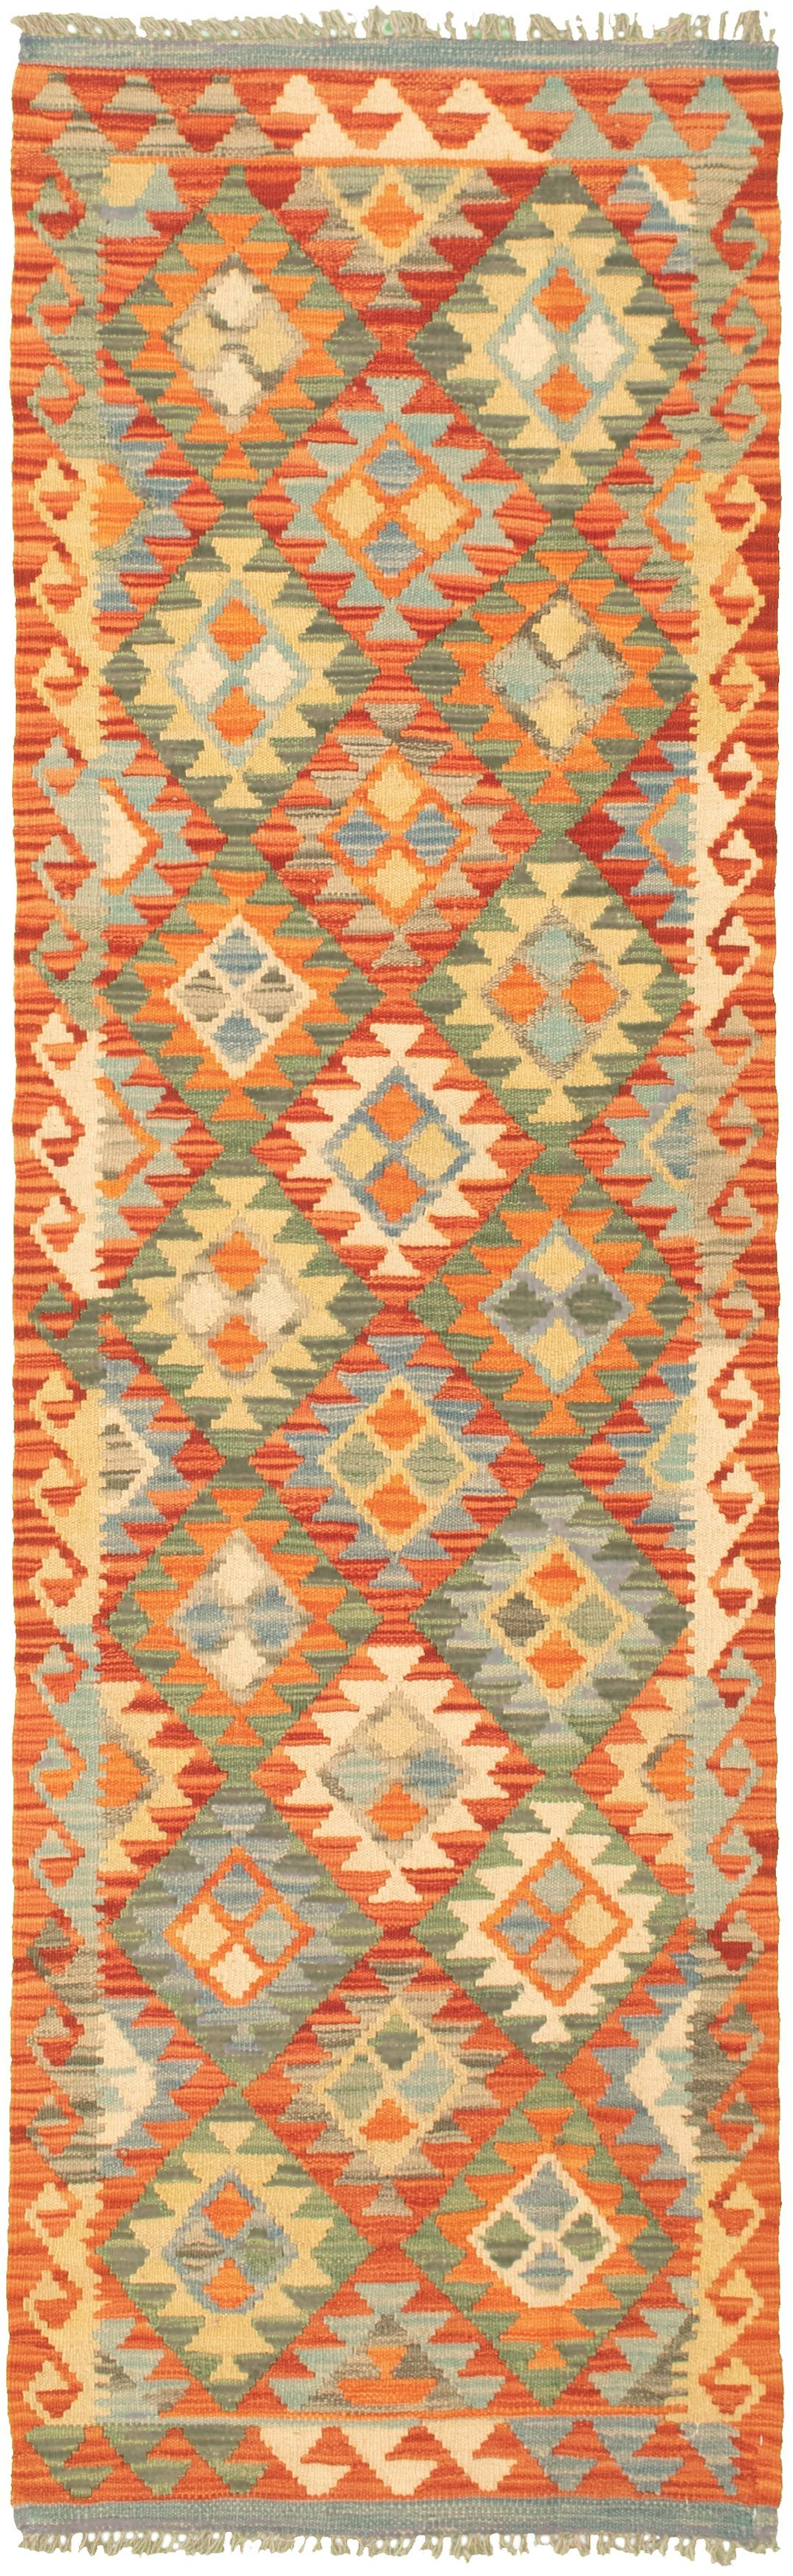 """Hand woven Bold and Colorful  Dark Copper Wool Kilim 2'3"""" x 7'10"""" Size: 2'3"""" x 7'10"""""""